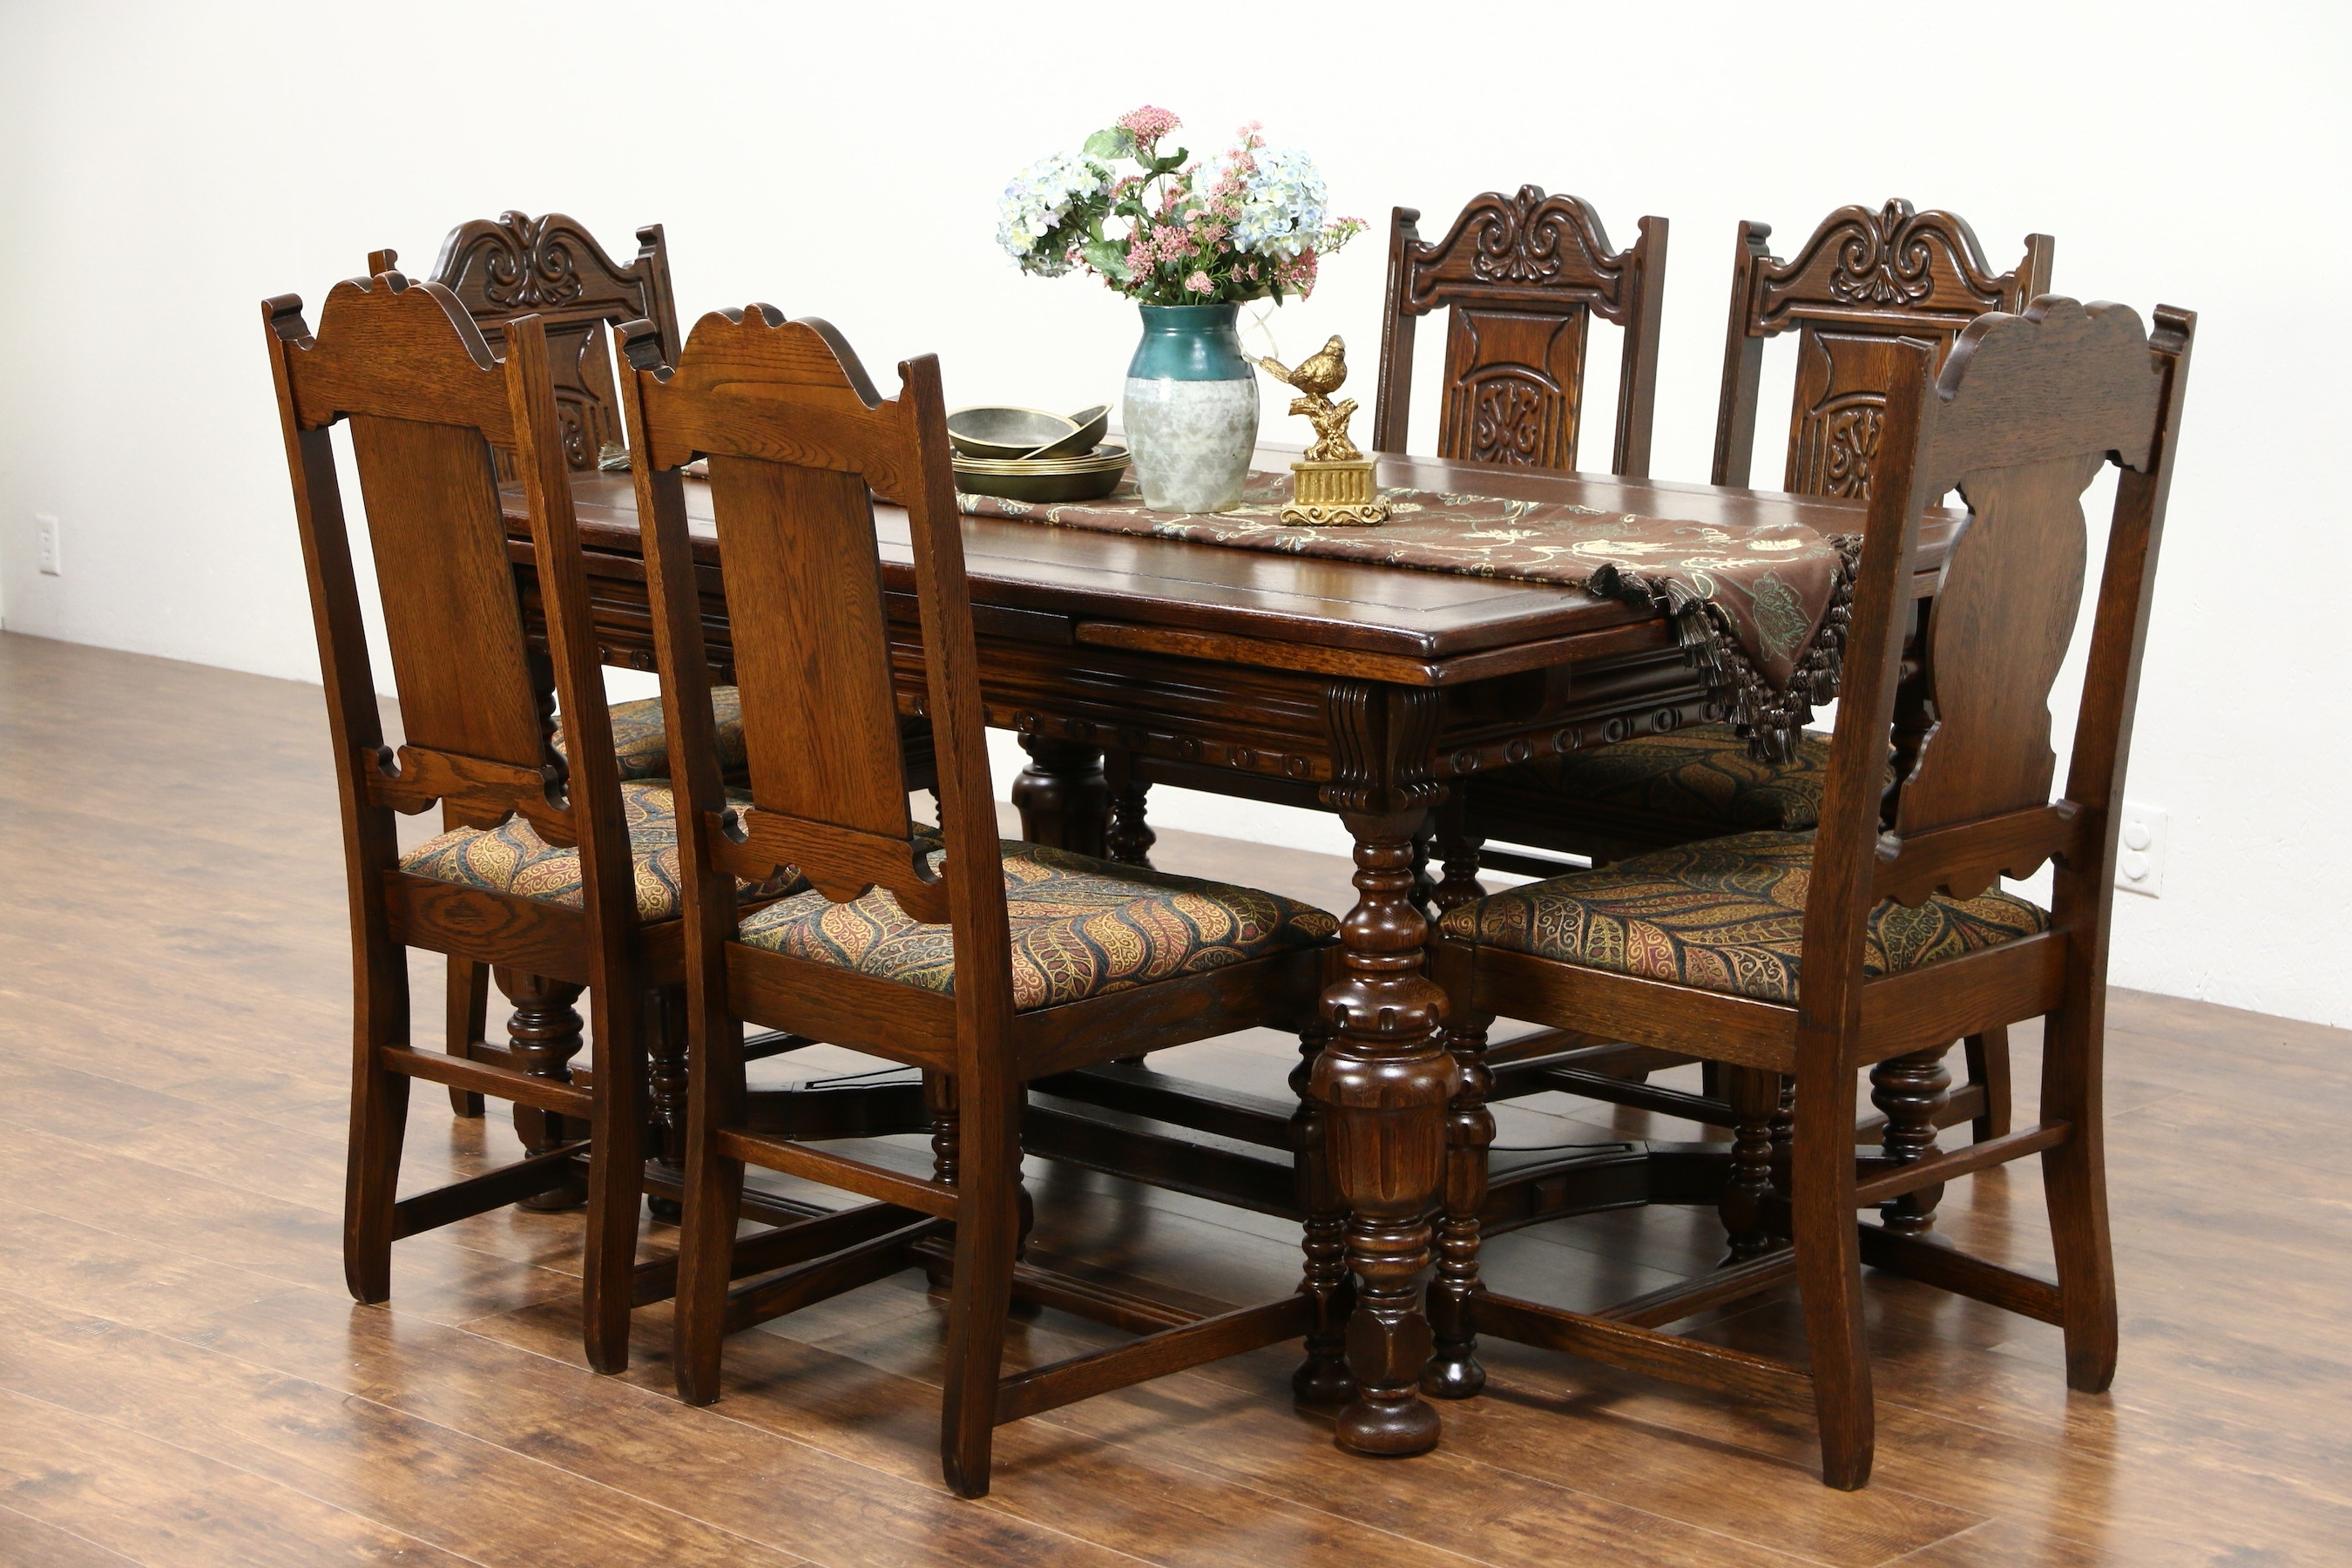 Sold – Tudor 1925 Antique Carved Oak Dining Set, Table, 6 Chairs For Trendy Oak Dining Set 6 Chairs (View 6 of 25)